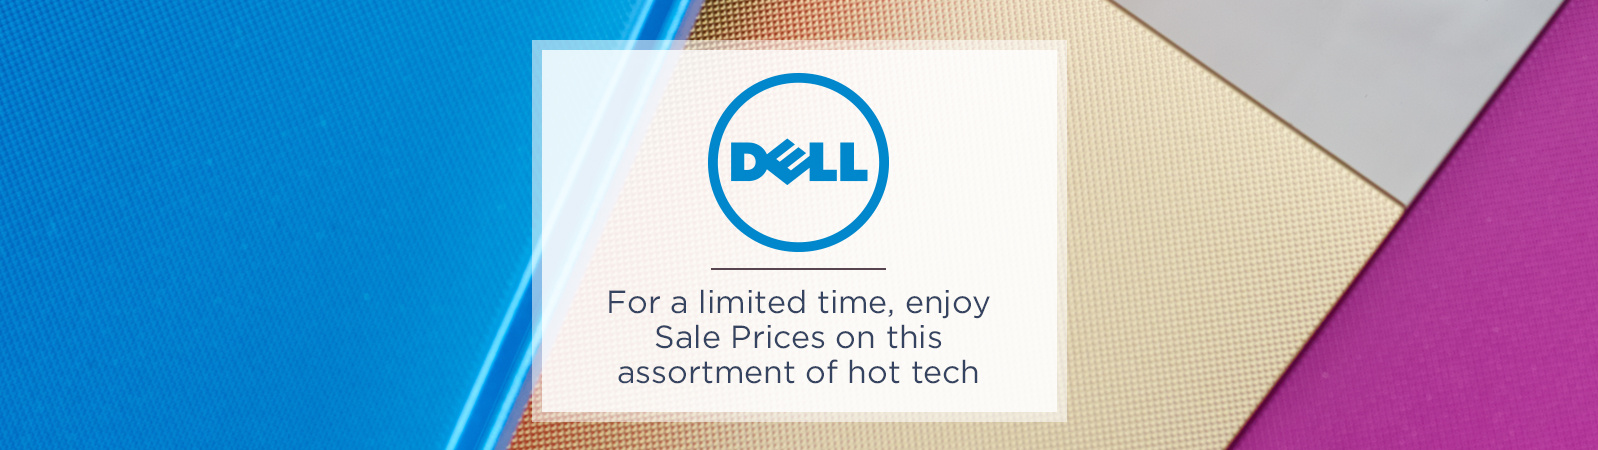 Dell -- For a limited time, enjoy Sale Prices on this assortment of hot tech